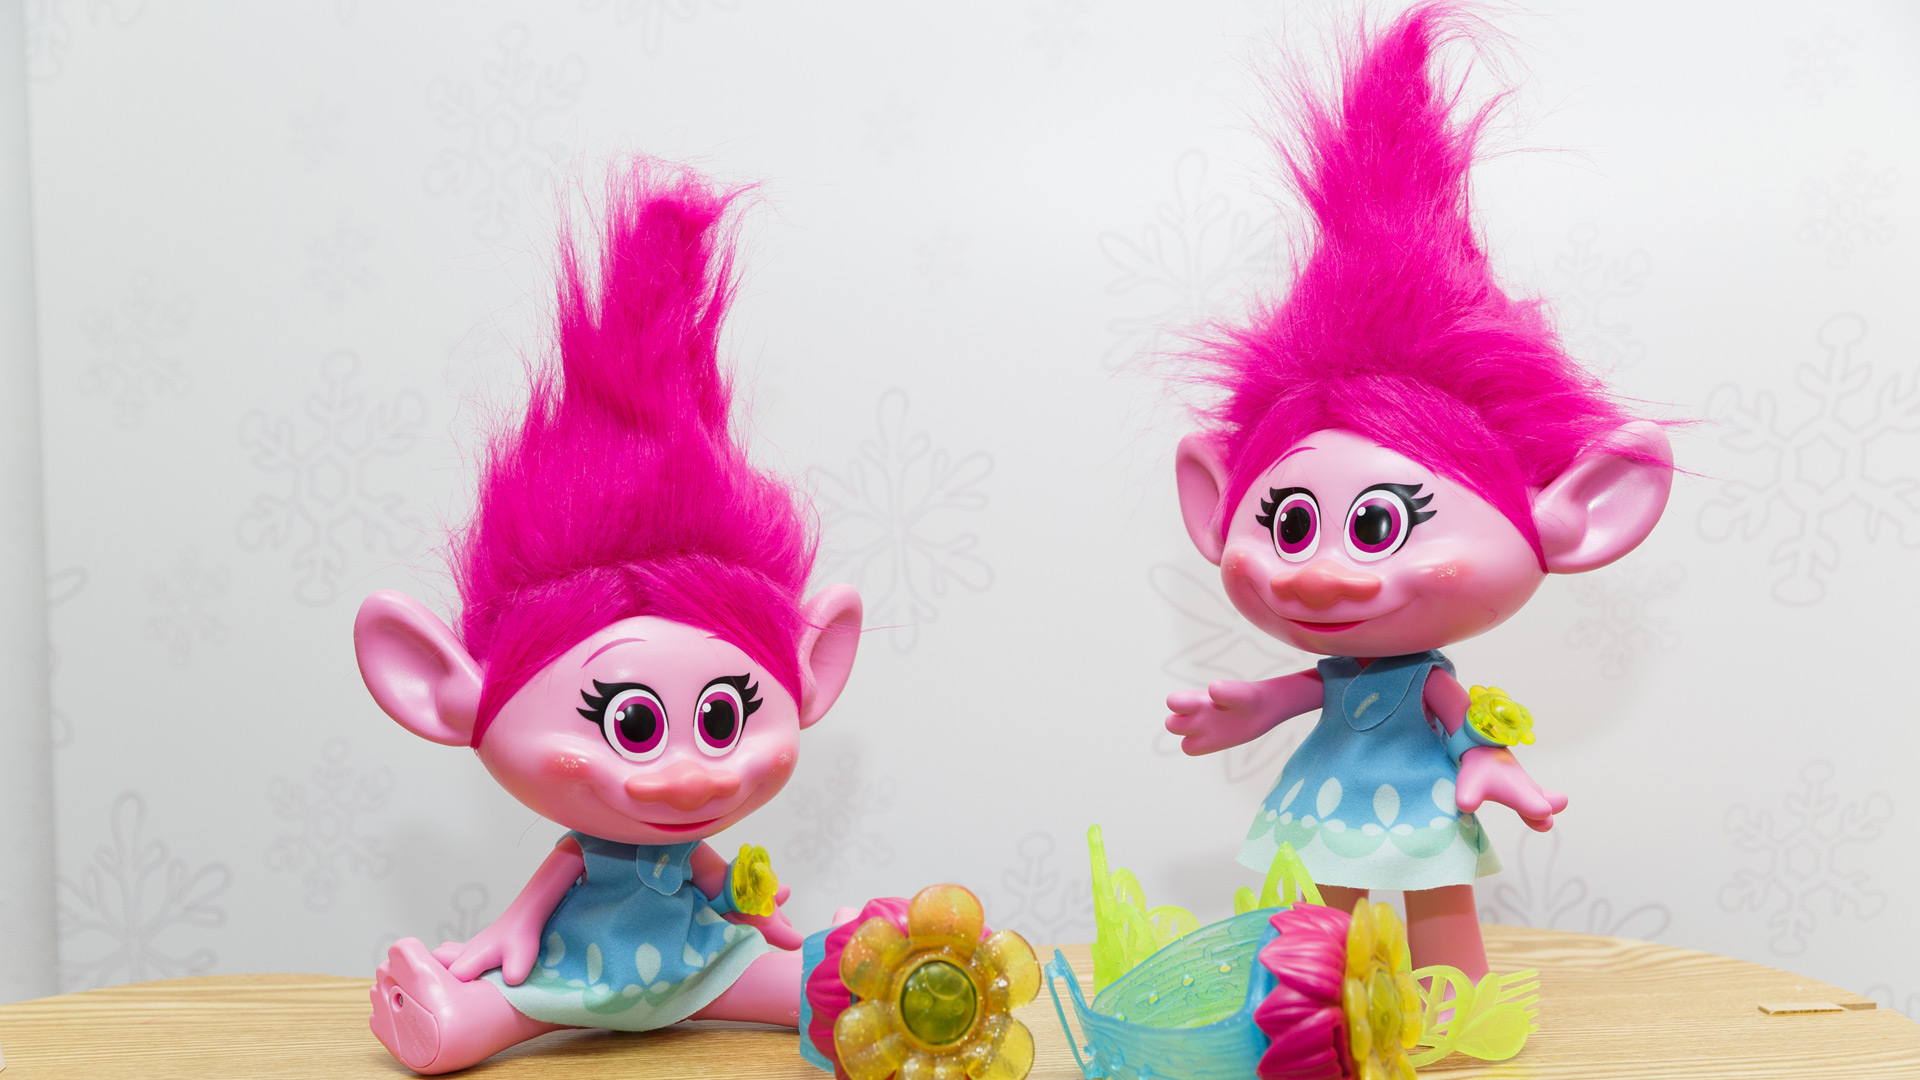 DreamWorks Troll Poppy dolls are displayed as Hamley's announce it's top ten toys for Christmas at Hamleys on October 6, 2016 in London, England. (Photo by Tristan Fewings/Getty Images)